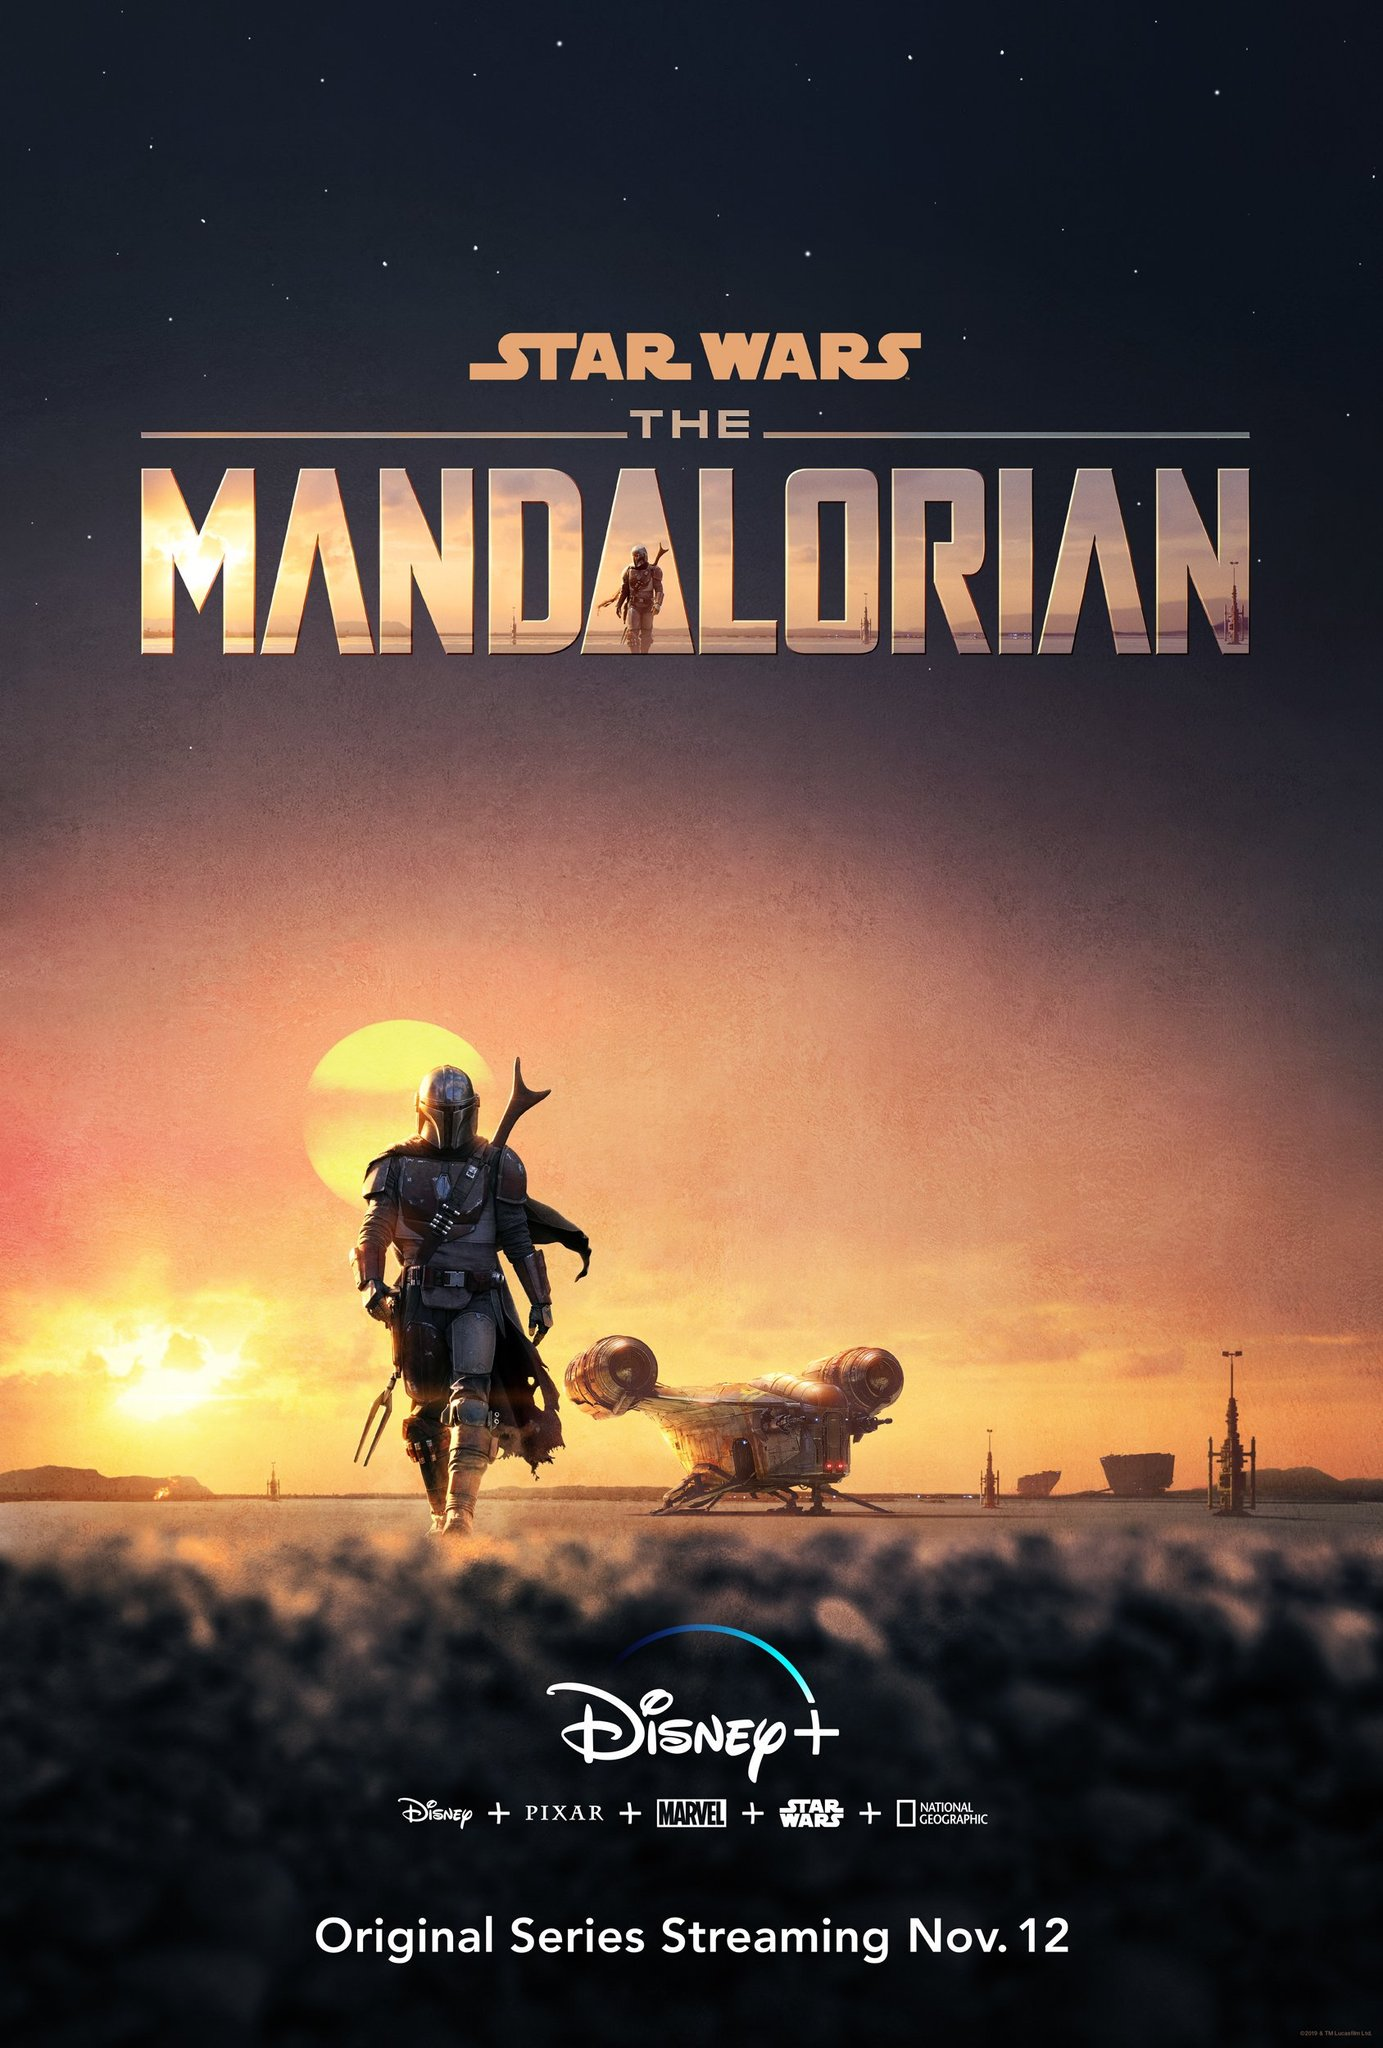 Star Wars : The Mandalorian [Star Wars - 2019] - Page 3 ECqCki2VAAAwfVz?format=jpg&name=large